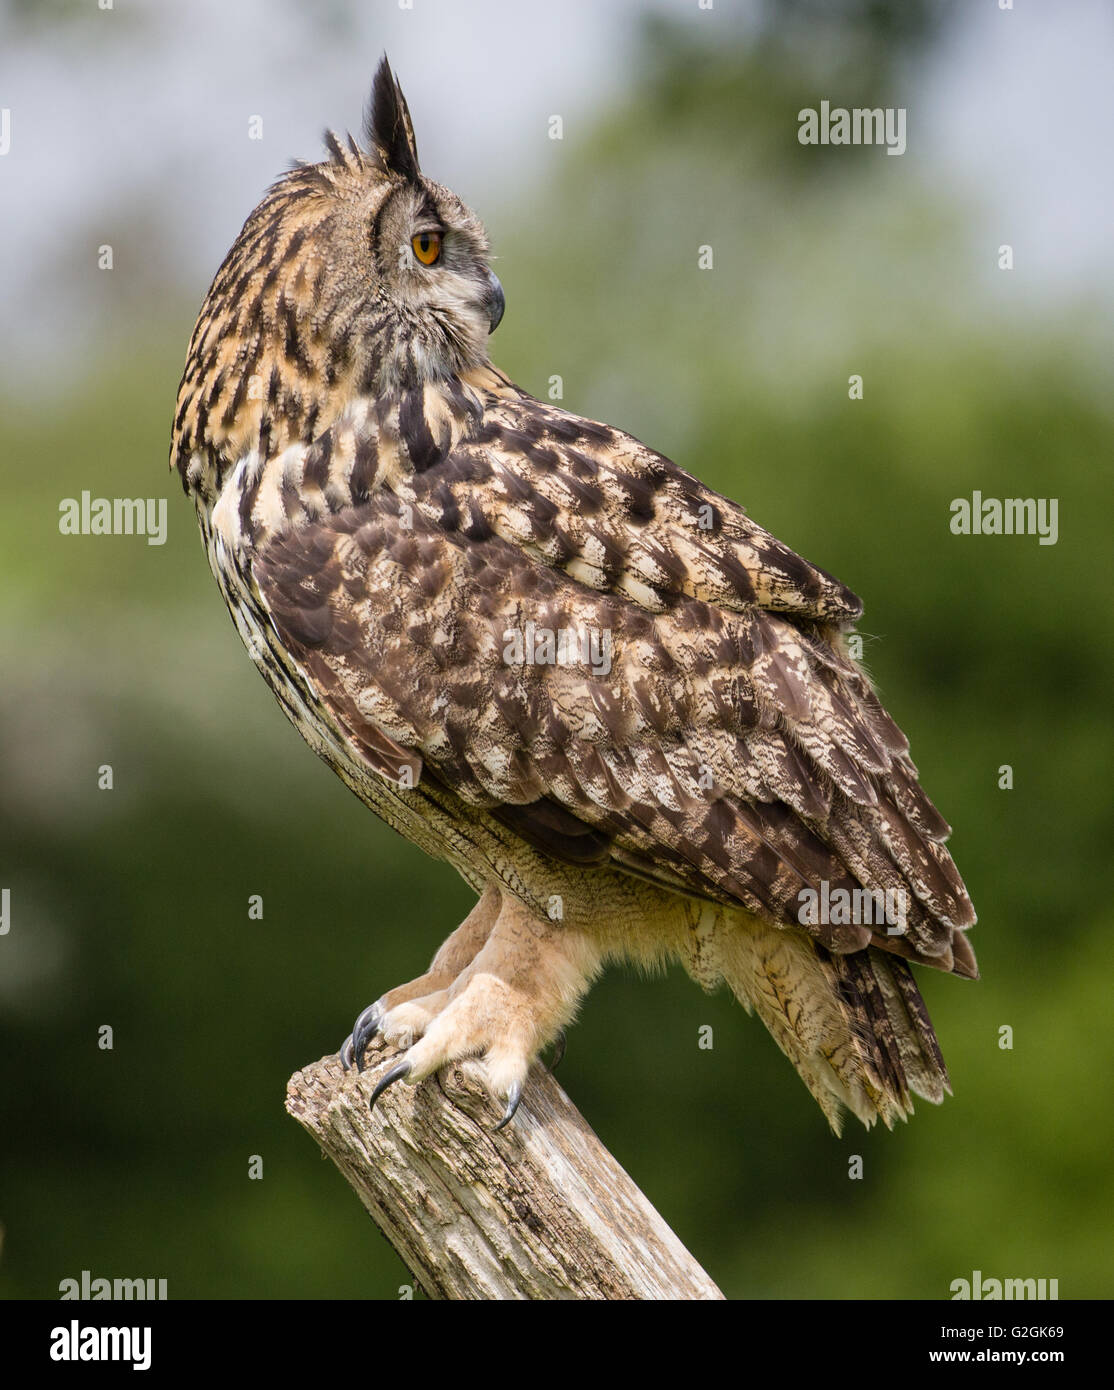 Eagle Owl Bubo bubo showing its ability to rotate its head through 180 degrees and look backwards - trained bird - Stock Image